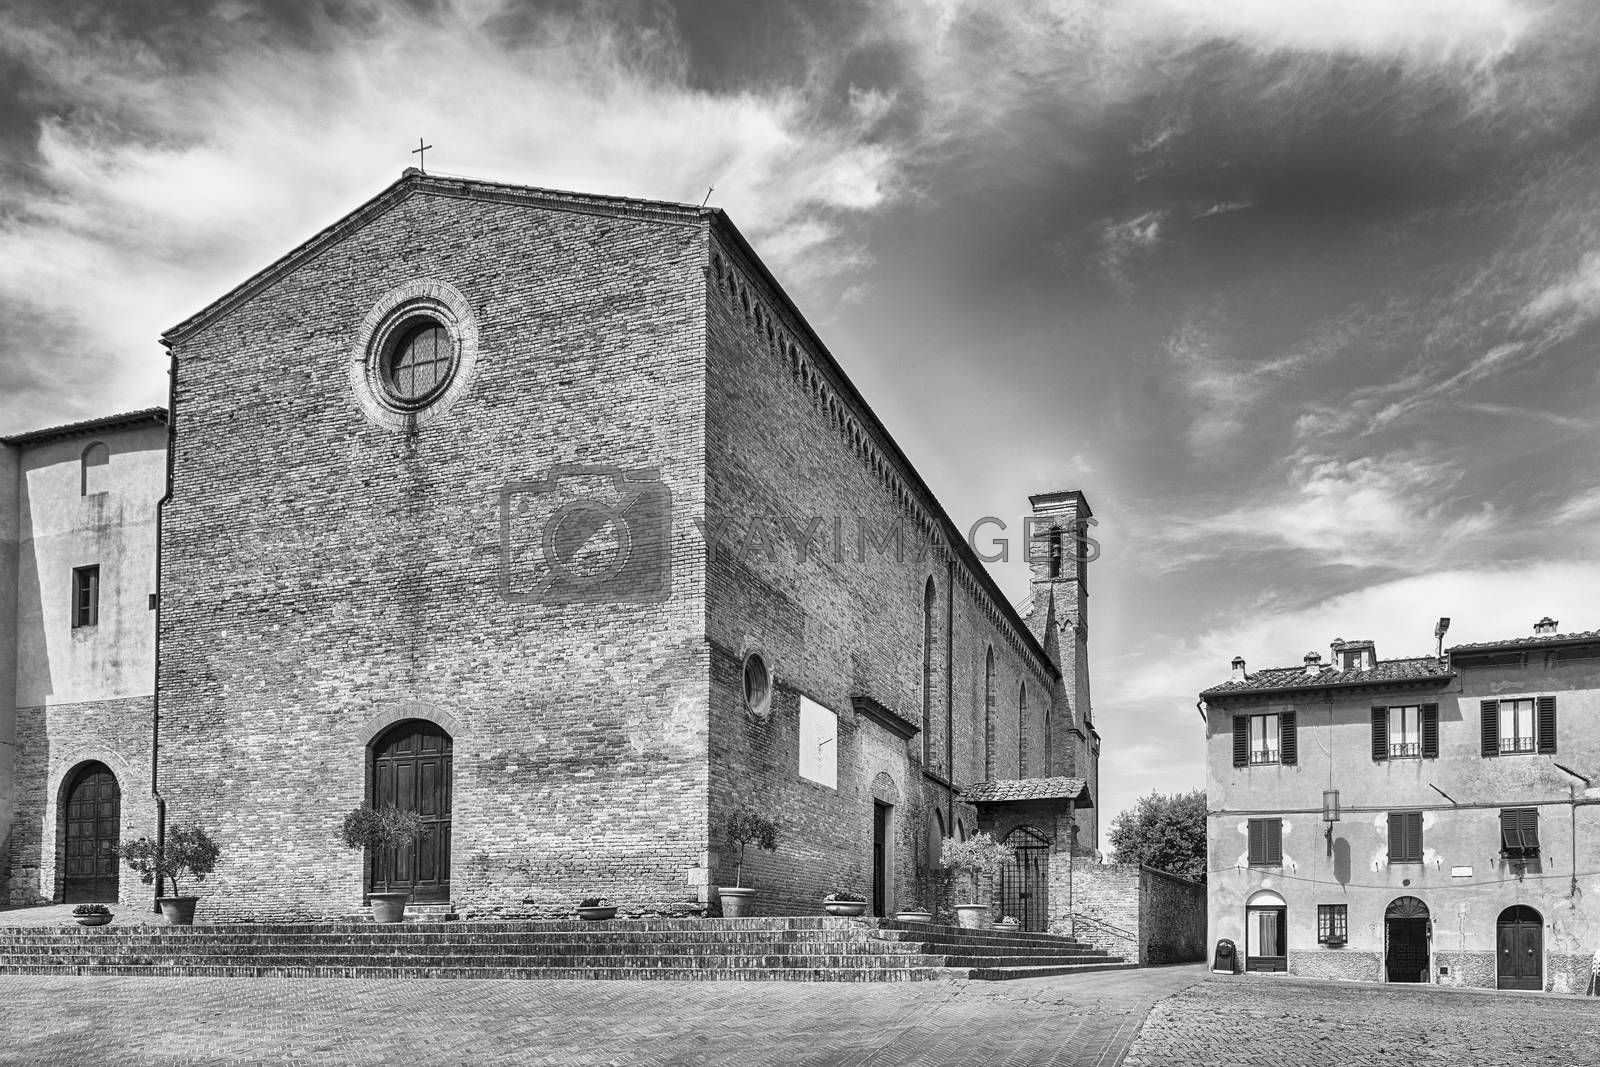 Church of Sant'Agostino, landmark in the medieval town of San Gimignano, Tuscany, Italy